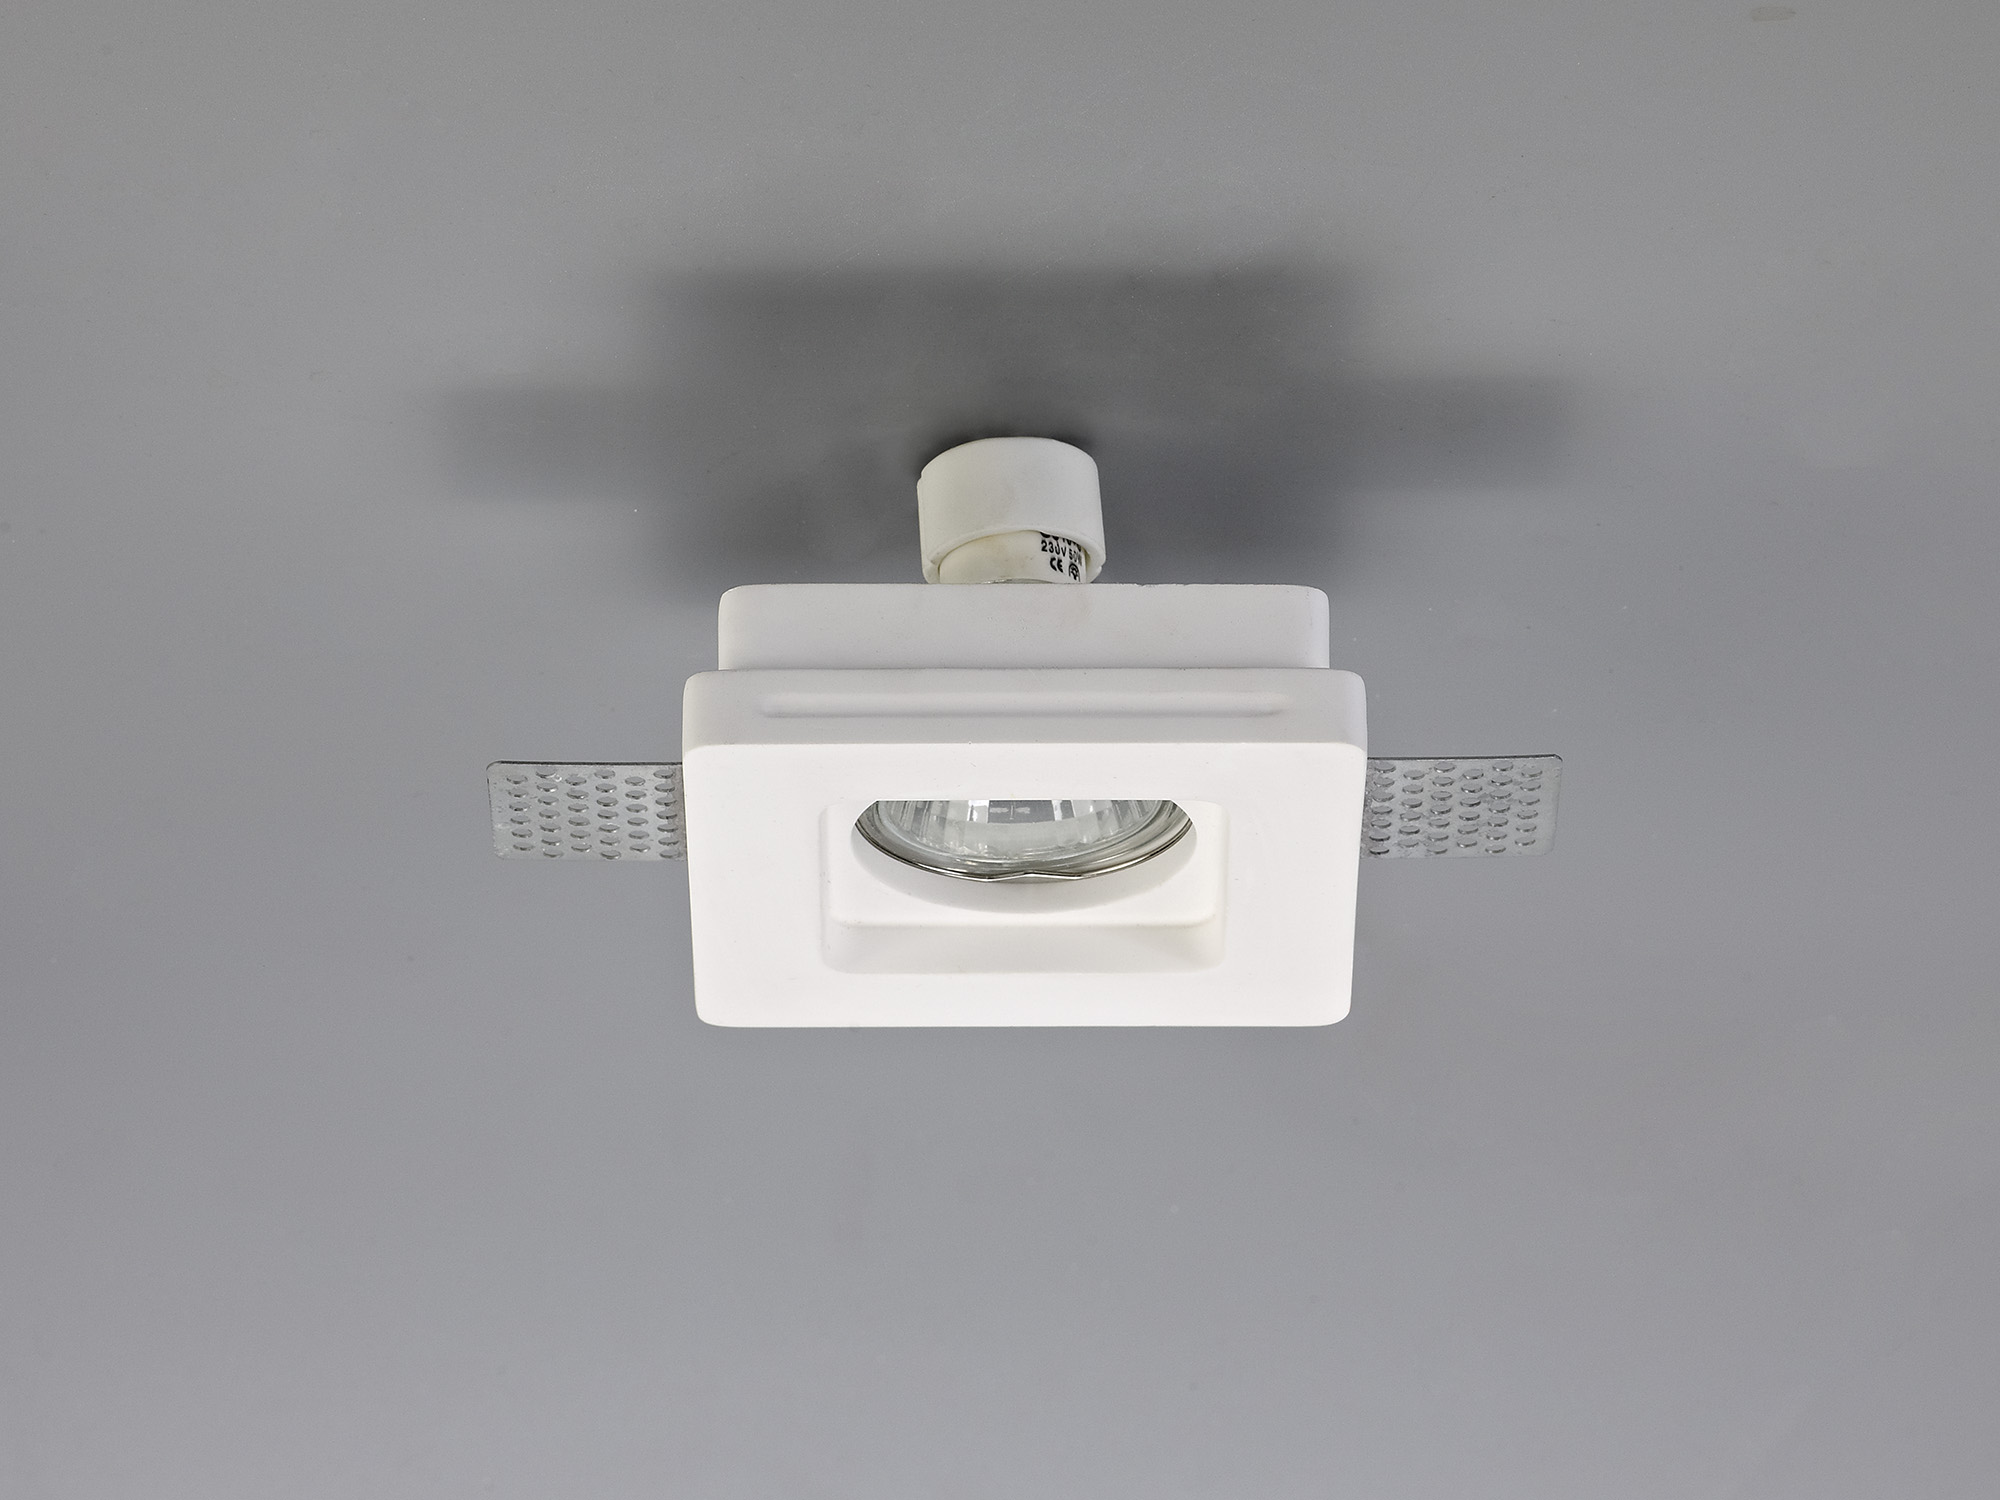 Square Stepped Recessed Spotlight, GU10, White Paintable Gypsum, Cut Out: L:103mmxW:103mm